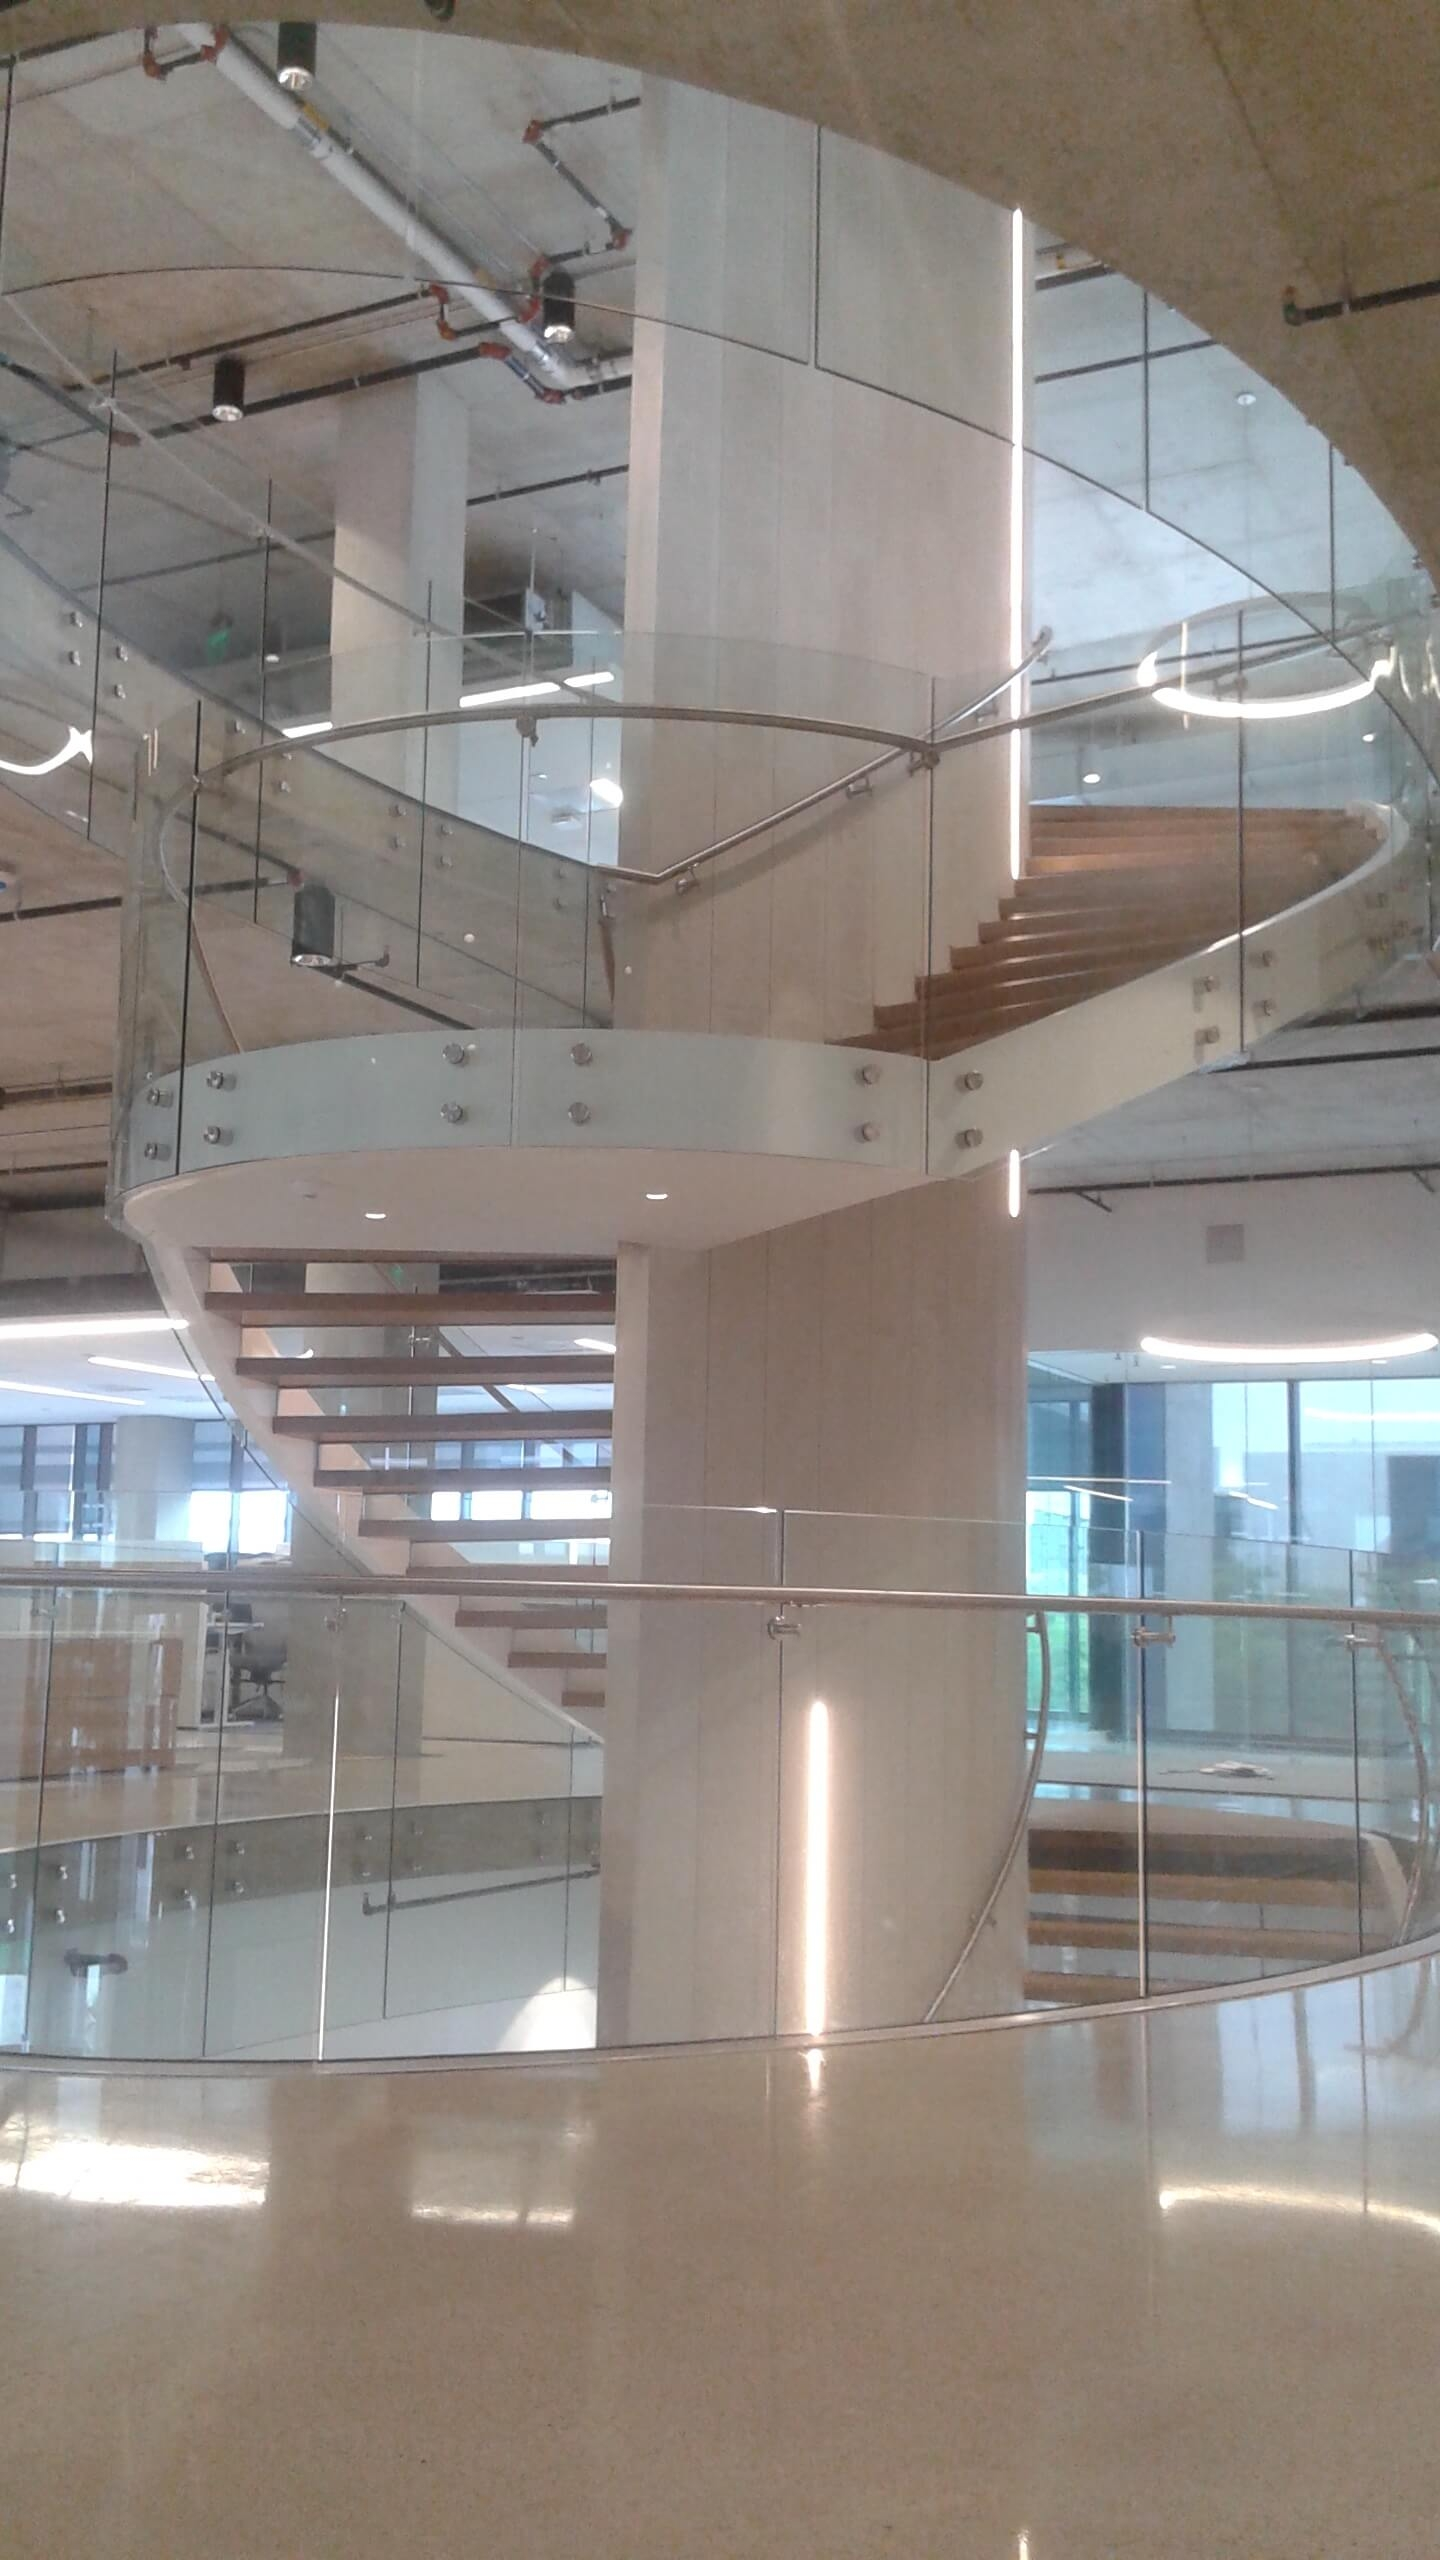 From The Field Curved Glass Point Supported Spiral Staircase   Spiral Staircase With Glass Railing   Metal   Residential   In India Staircase   Contemporary Glass   Thin Glass